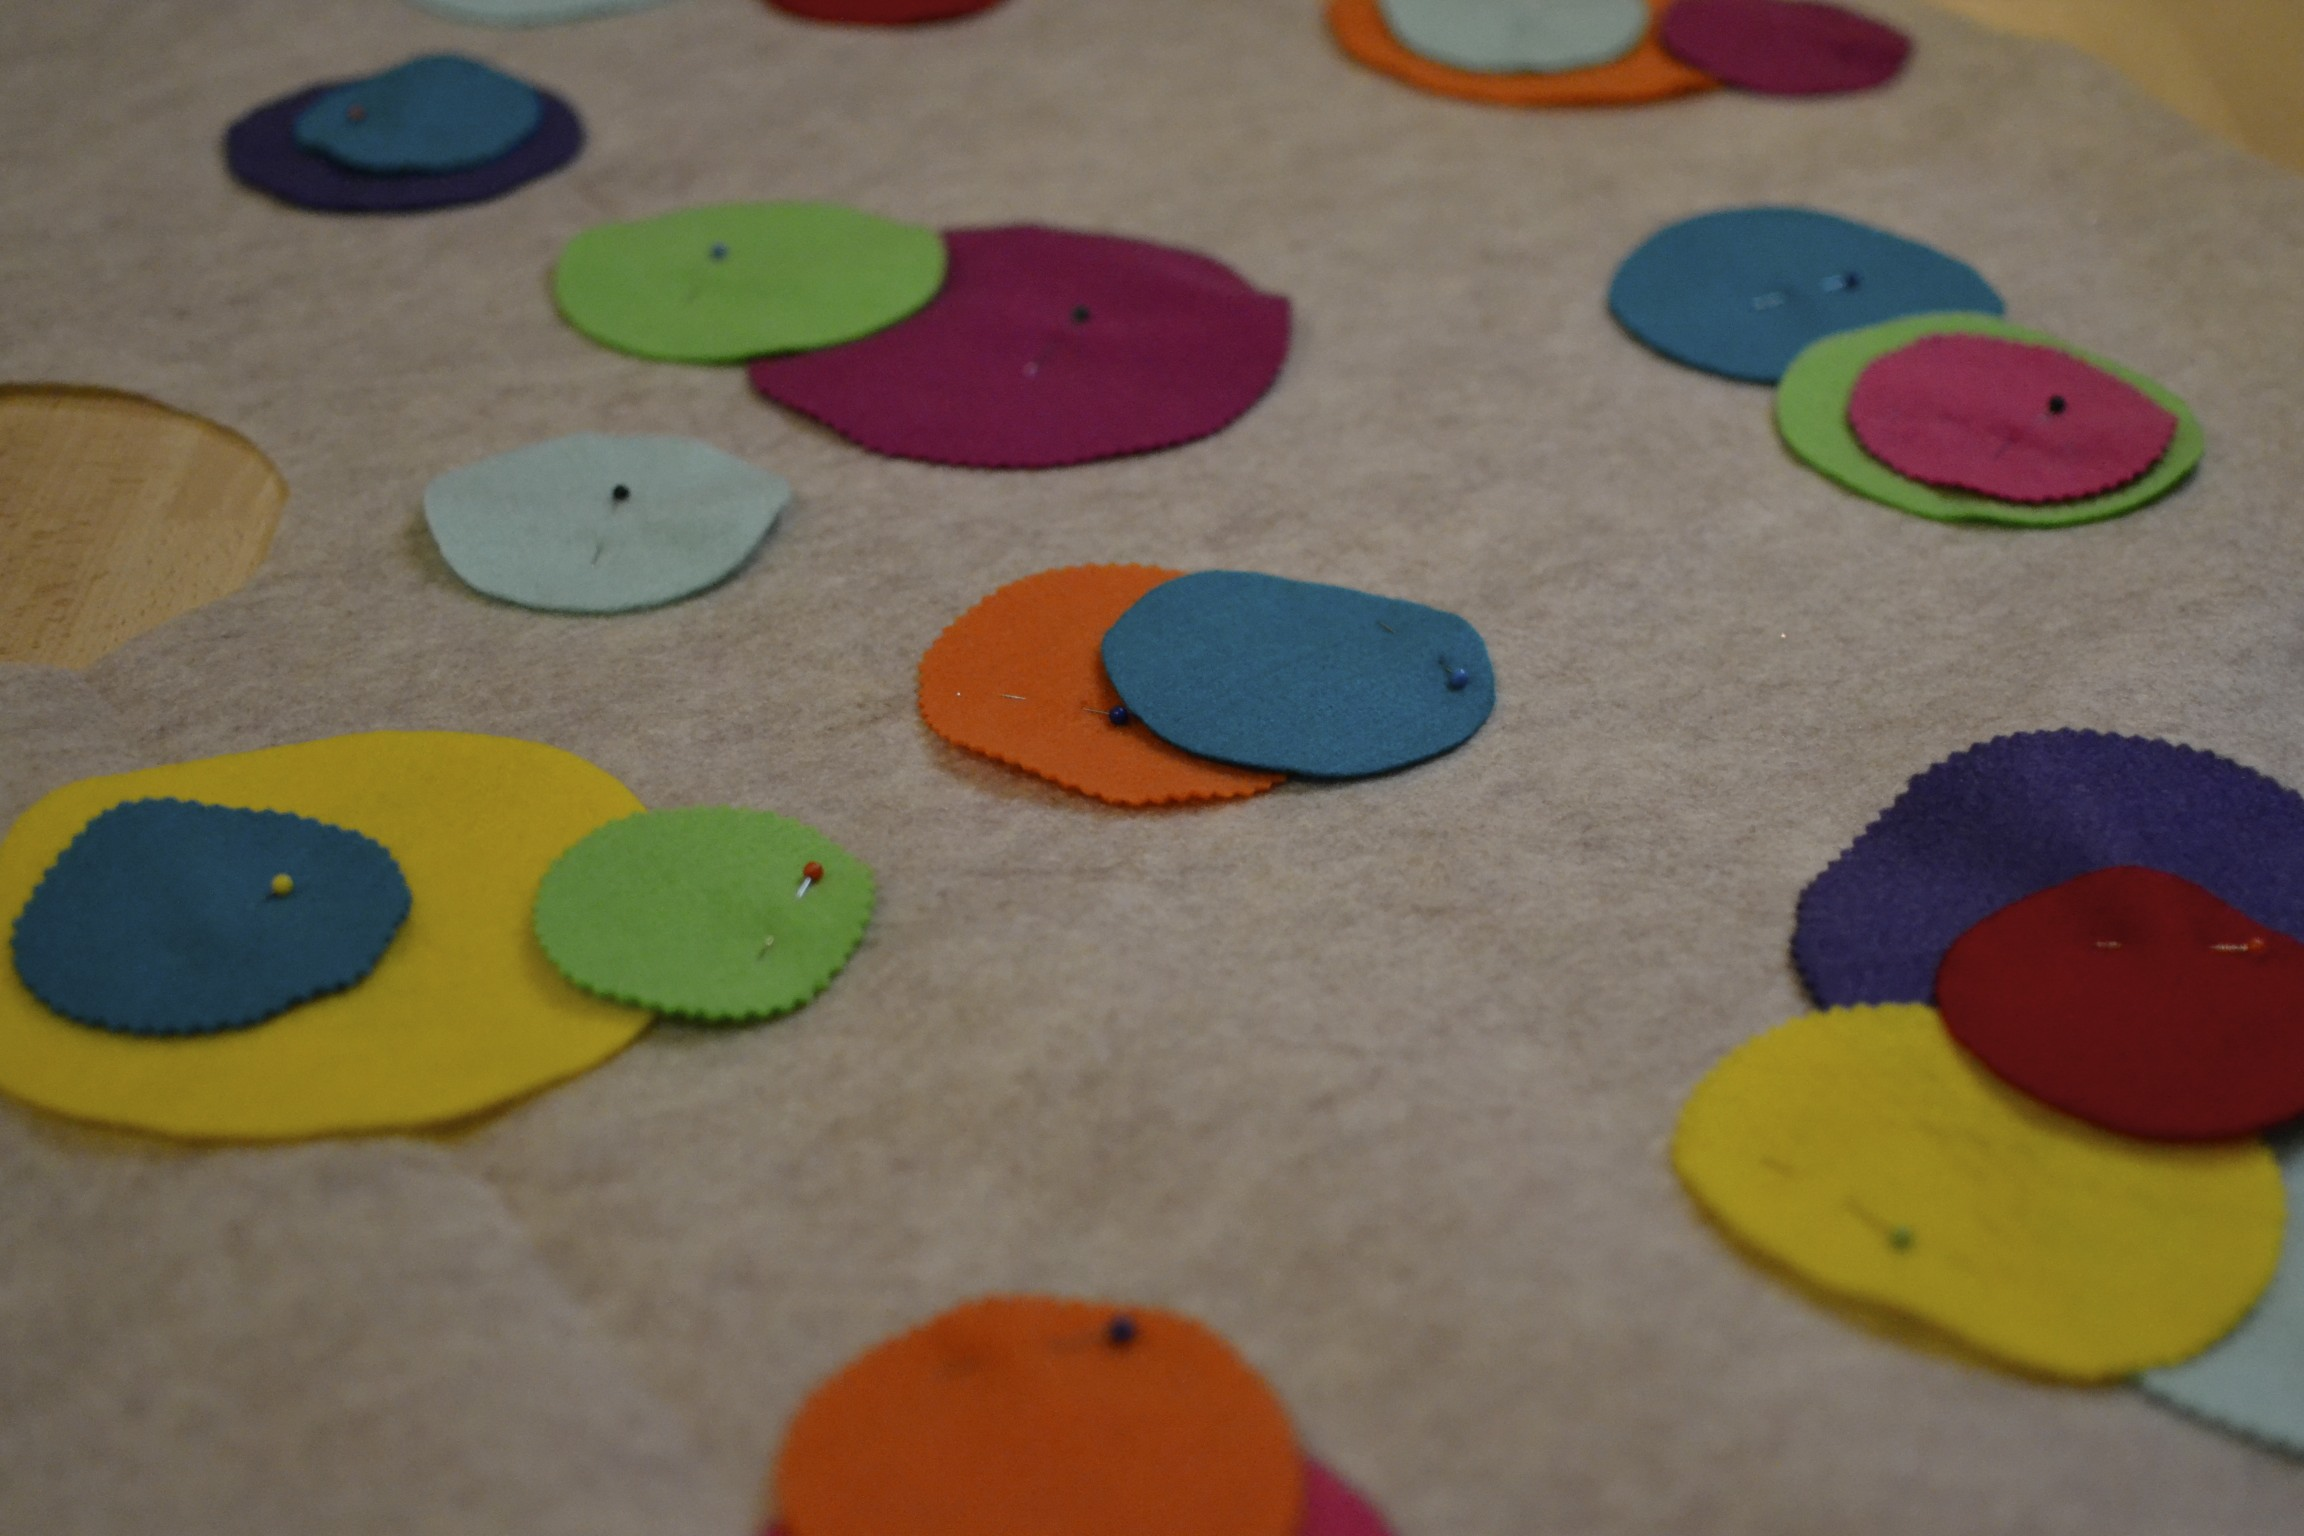 i then randomly laid out the circles, layering some on top of others. once i found a mix that i liked, i pinned everything down into place.